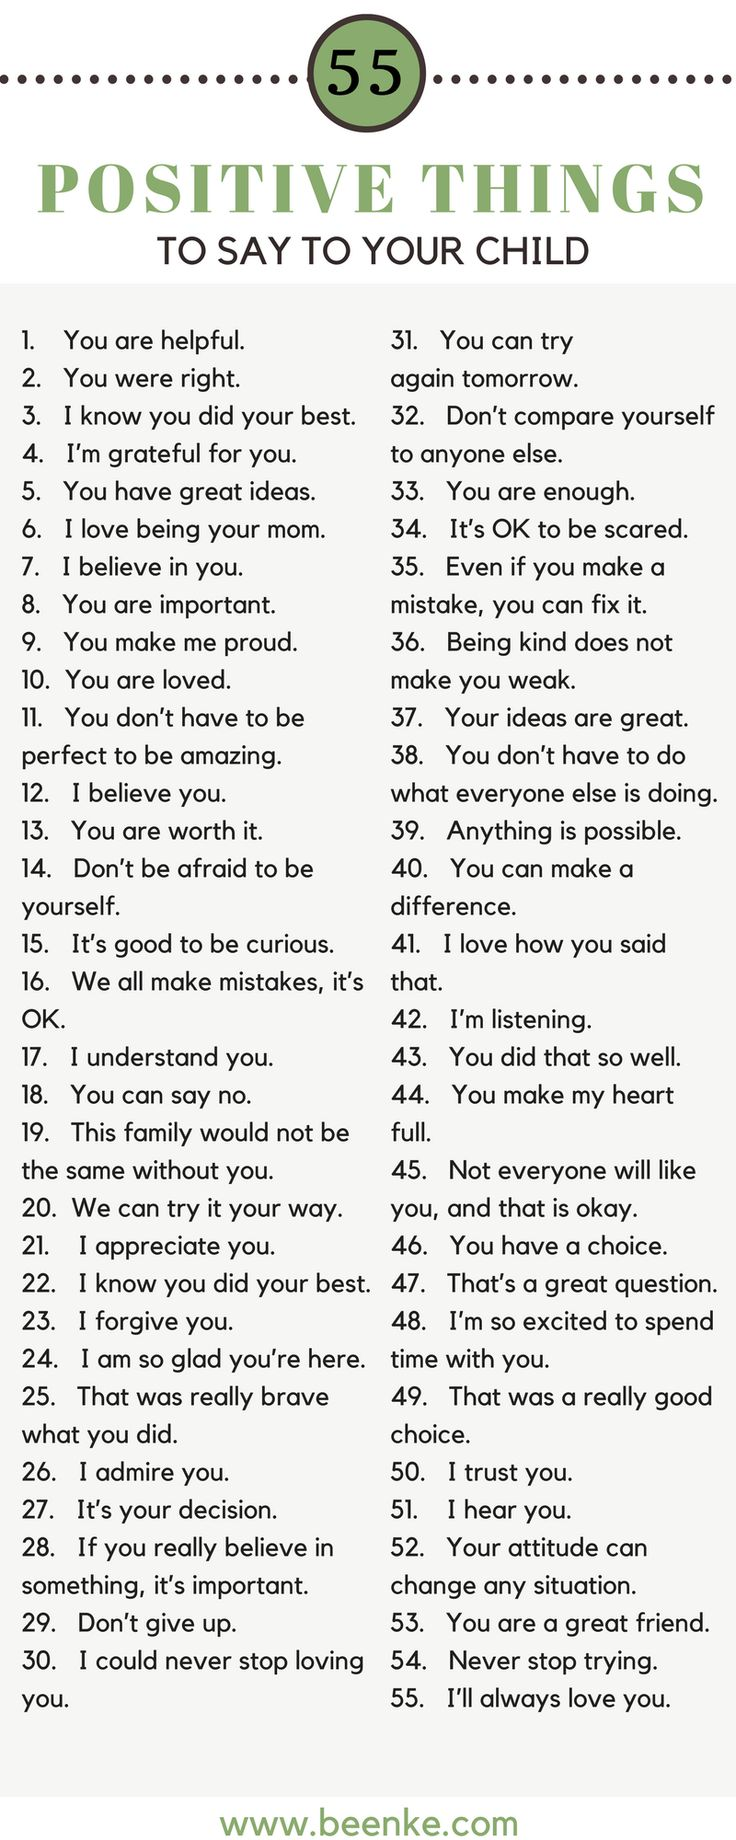 As parents, the way we speak to our children is incredibly important. Words can build kids up, and they can just as easily tear them down. Check out our list of 55 positive things to say to your child on a daily basis. Bond while you build their confidence. #beenke #parenting